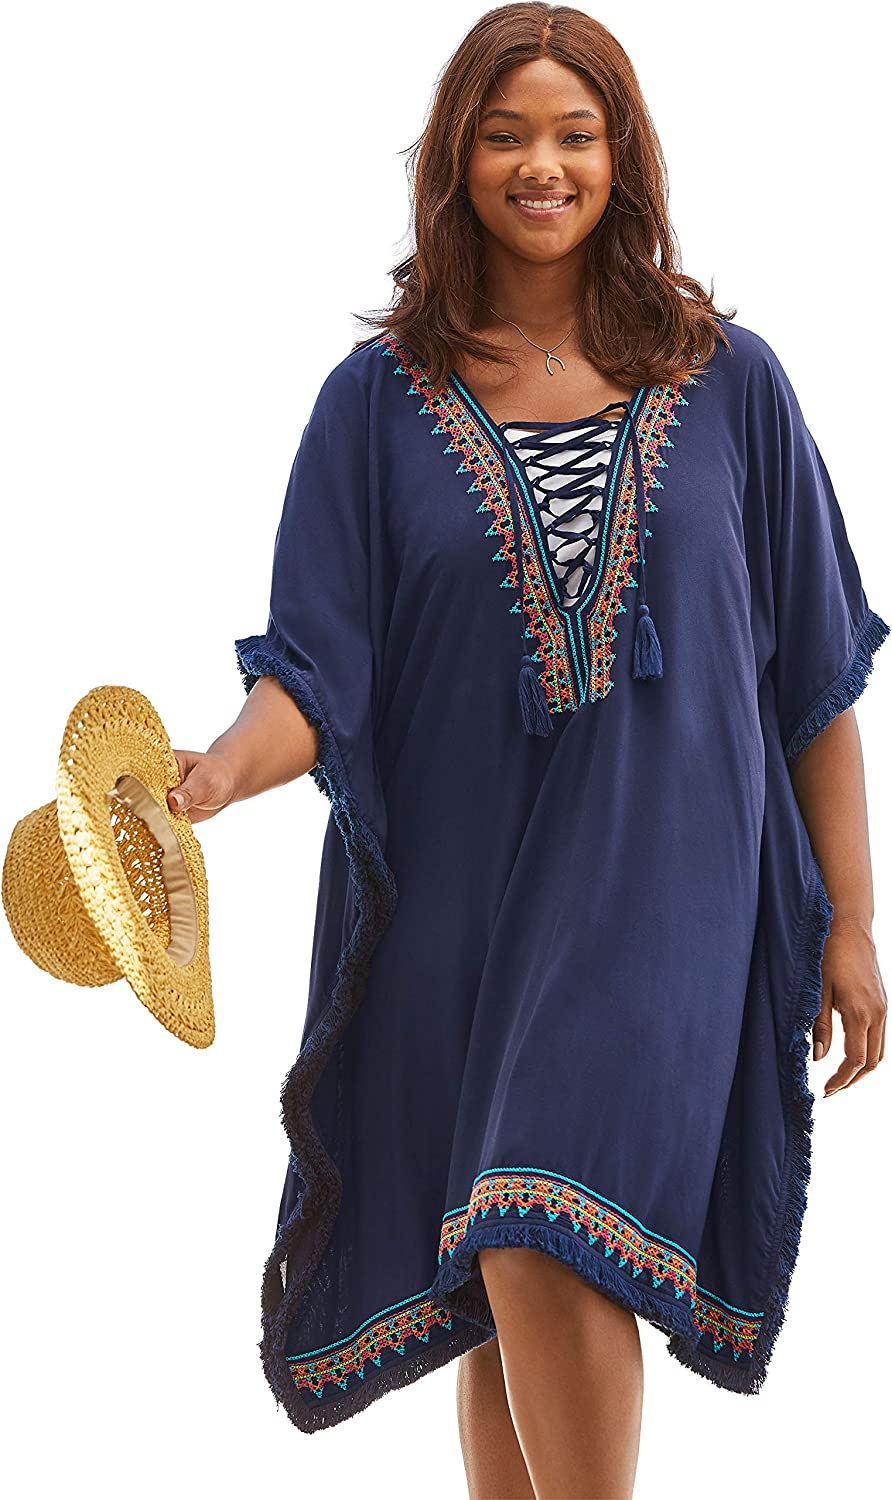 Swimsuits For All Women's Plus Size Lace-Up Caftan Cover Up Swimsuit Cover Up